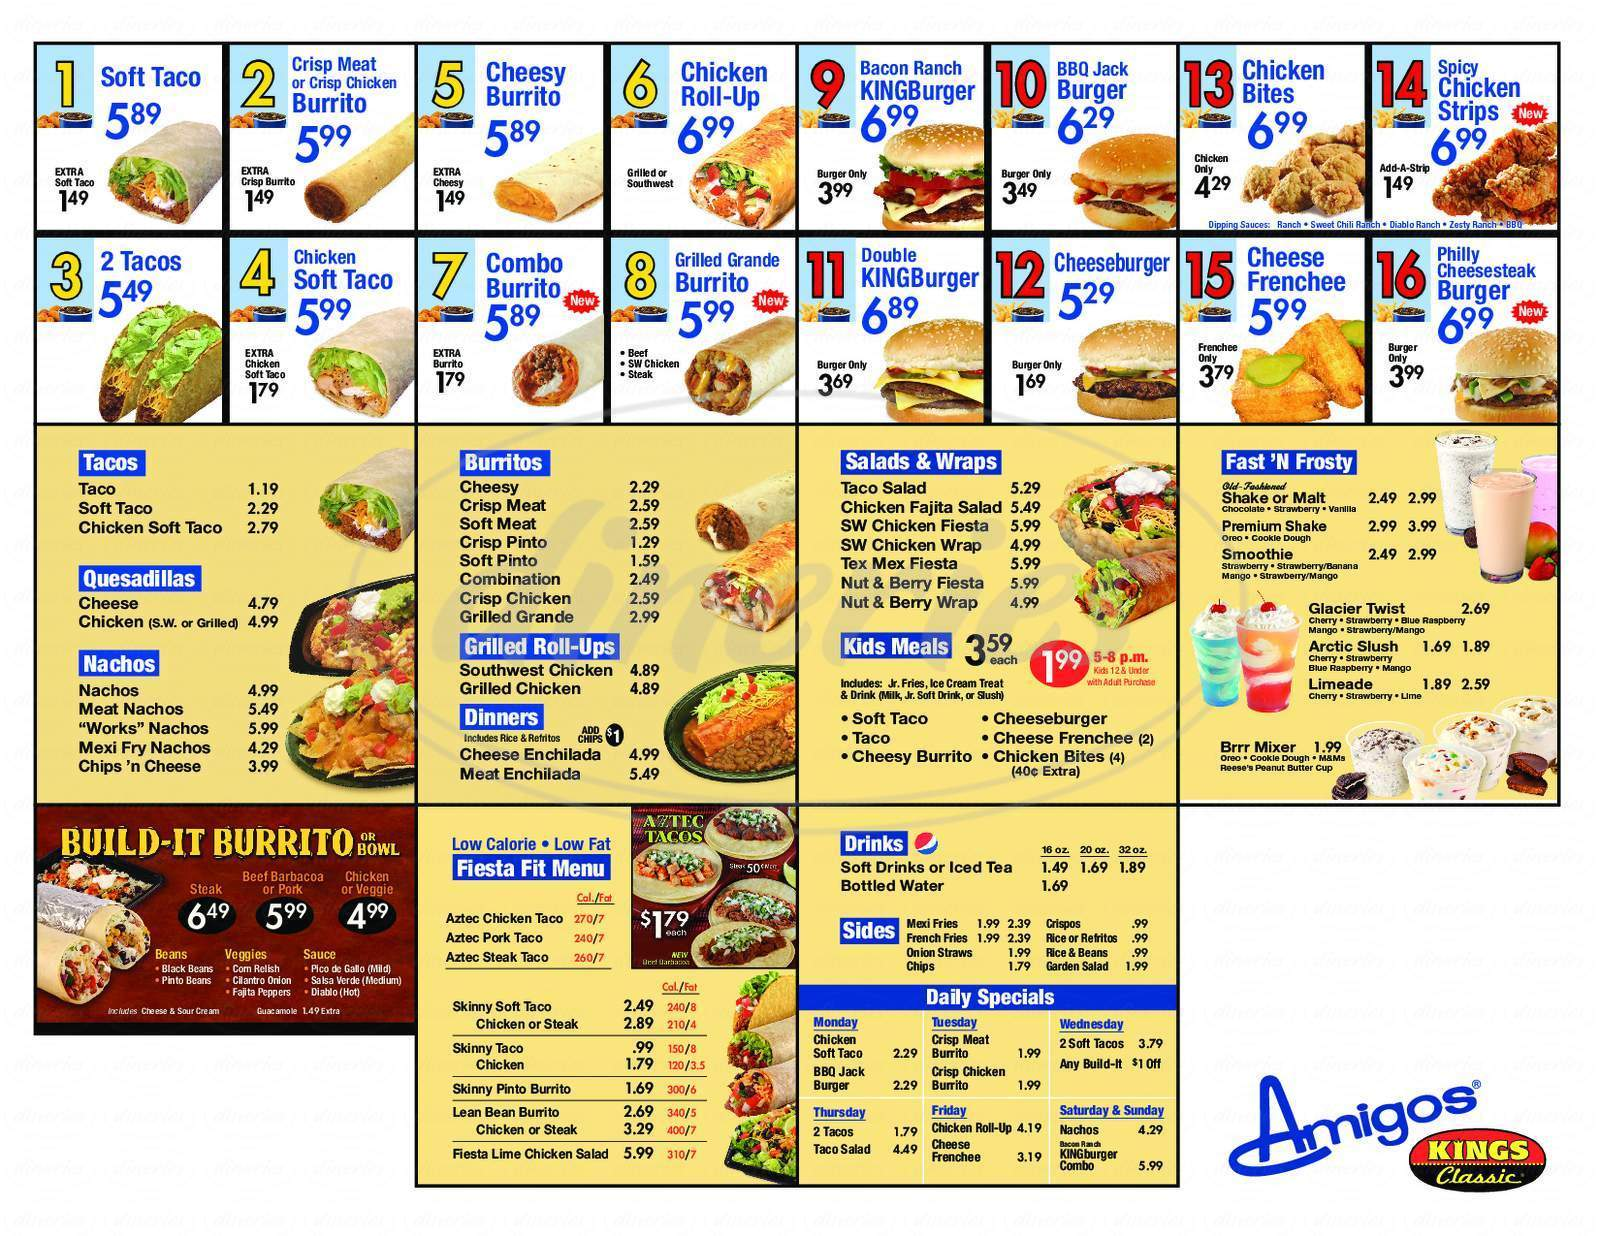 menu for Amigos Kings Classic